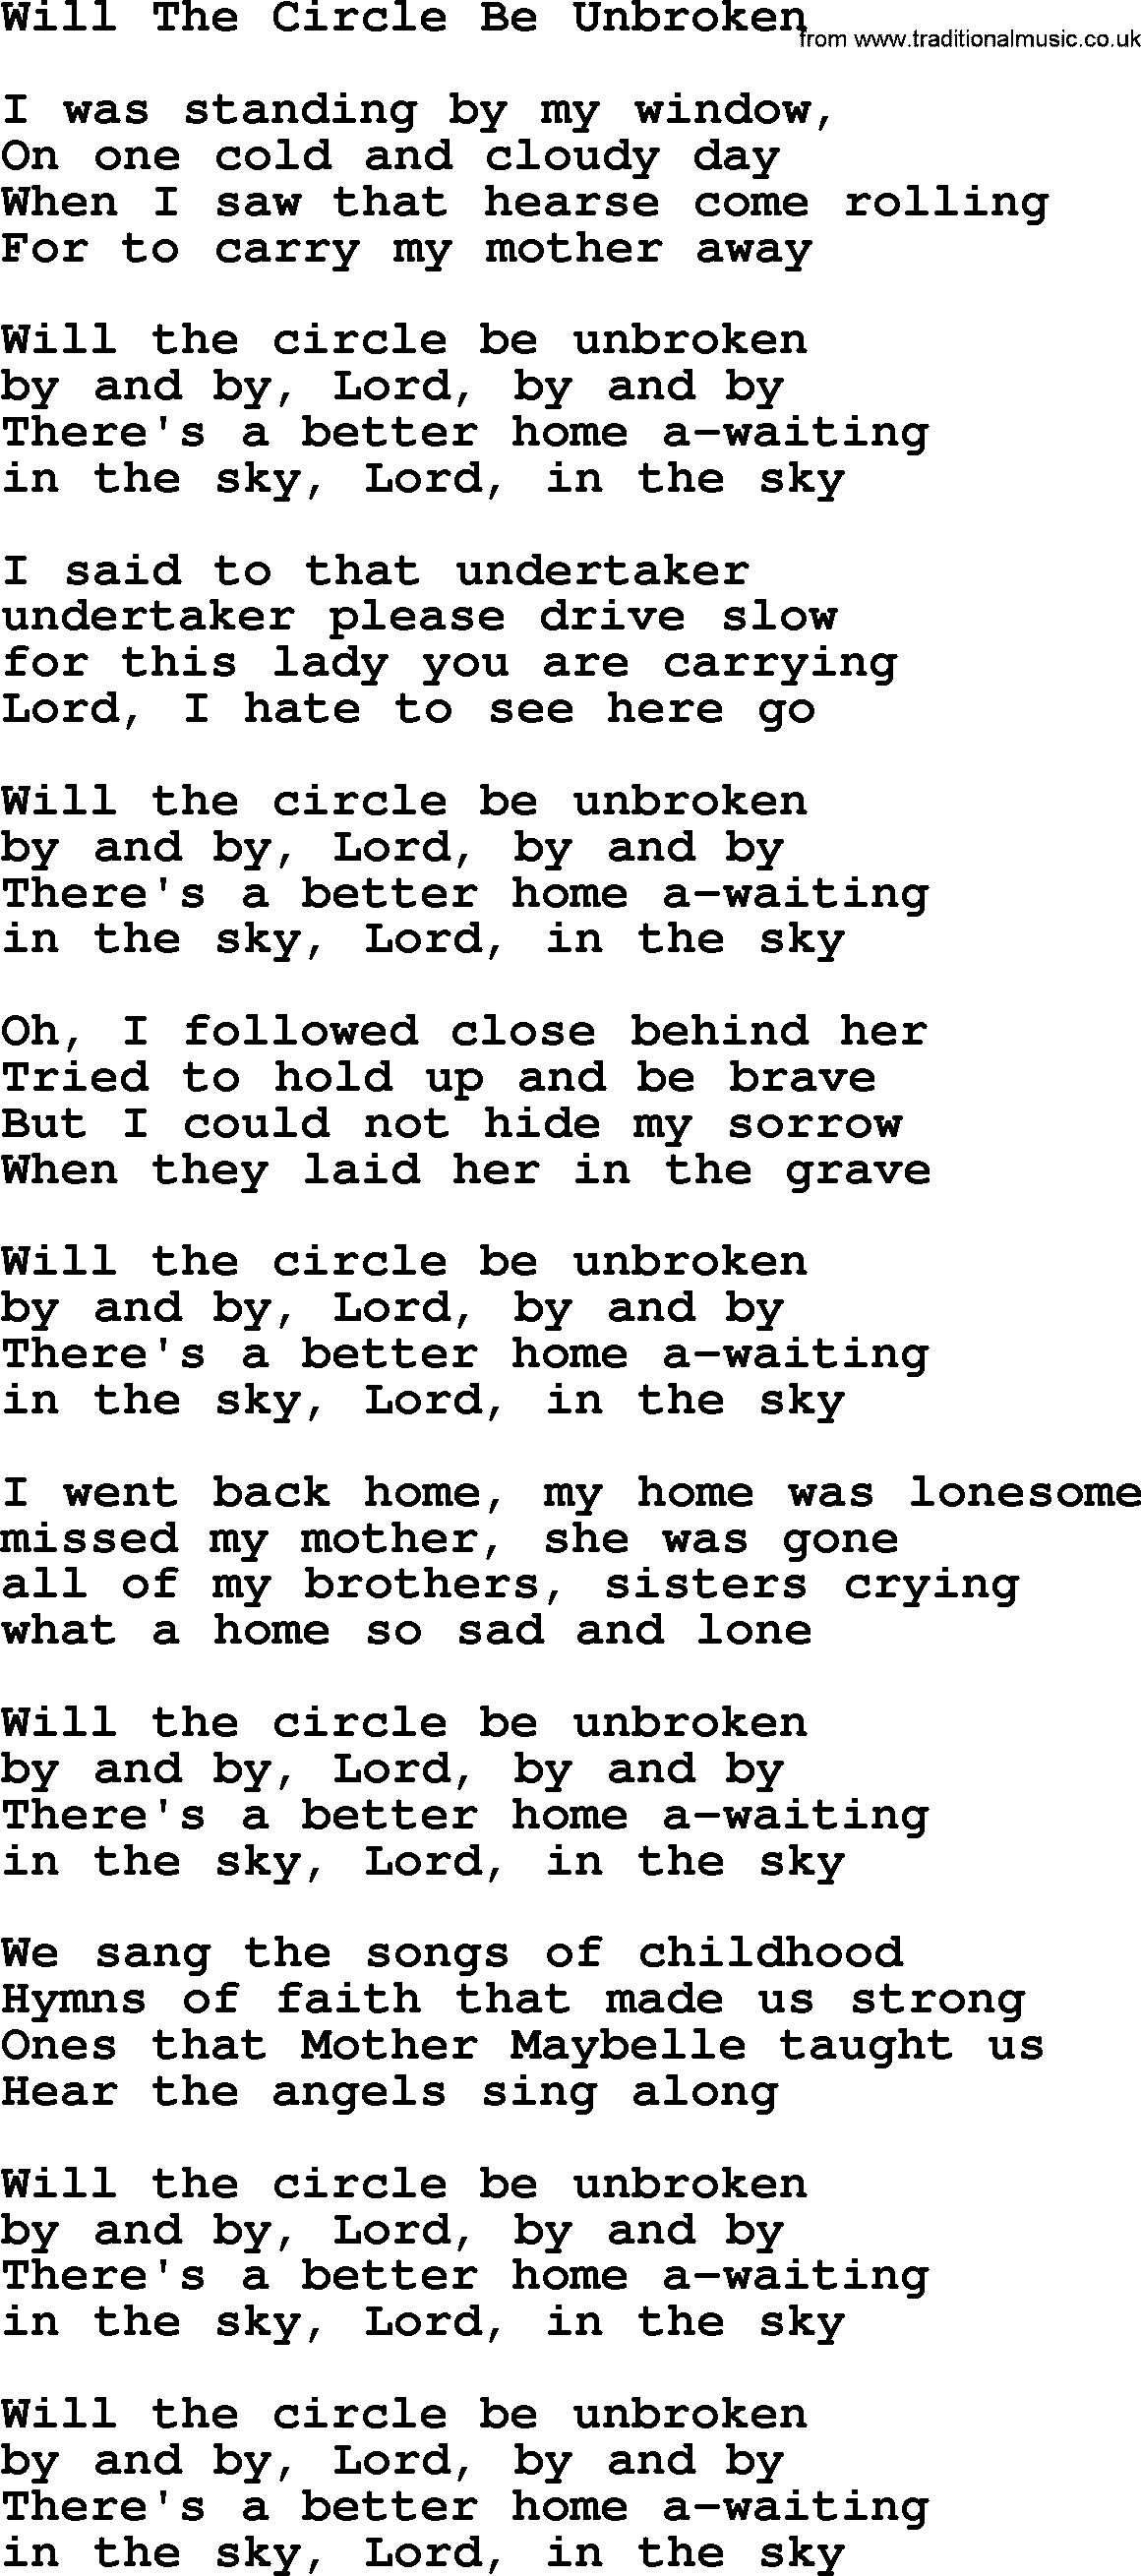 Willie Nelson song: Will The Circle Be Unbroken, lyrics